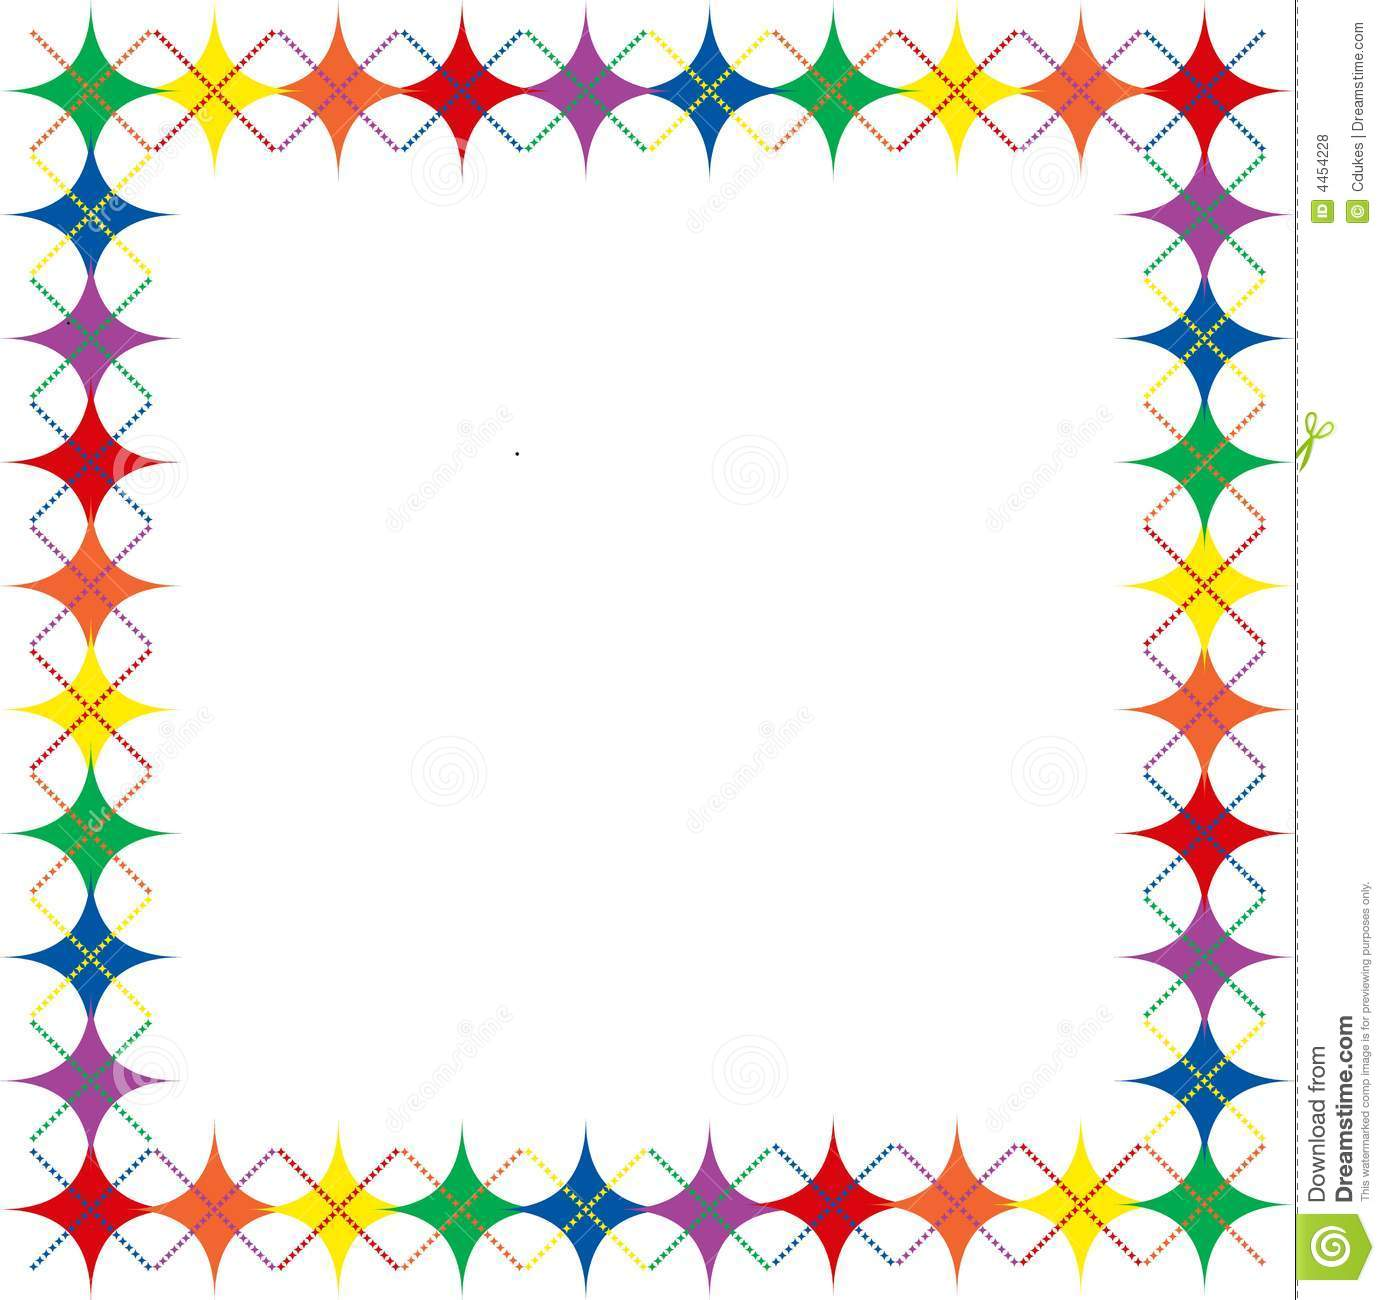 Free Rainbow Border Clipart, Download Free Clip Art, Free.